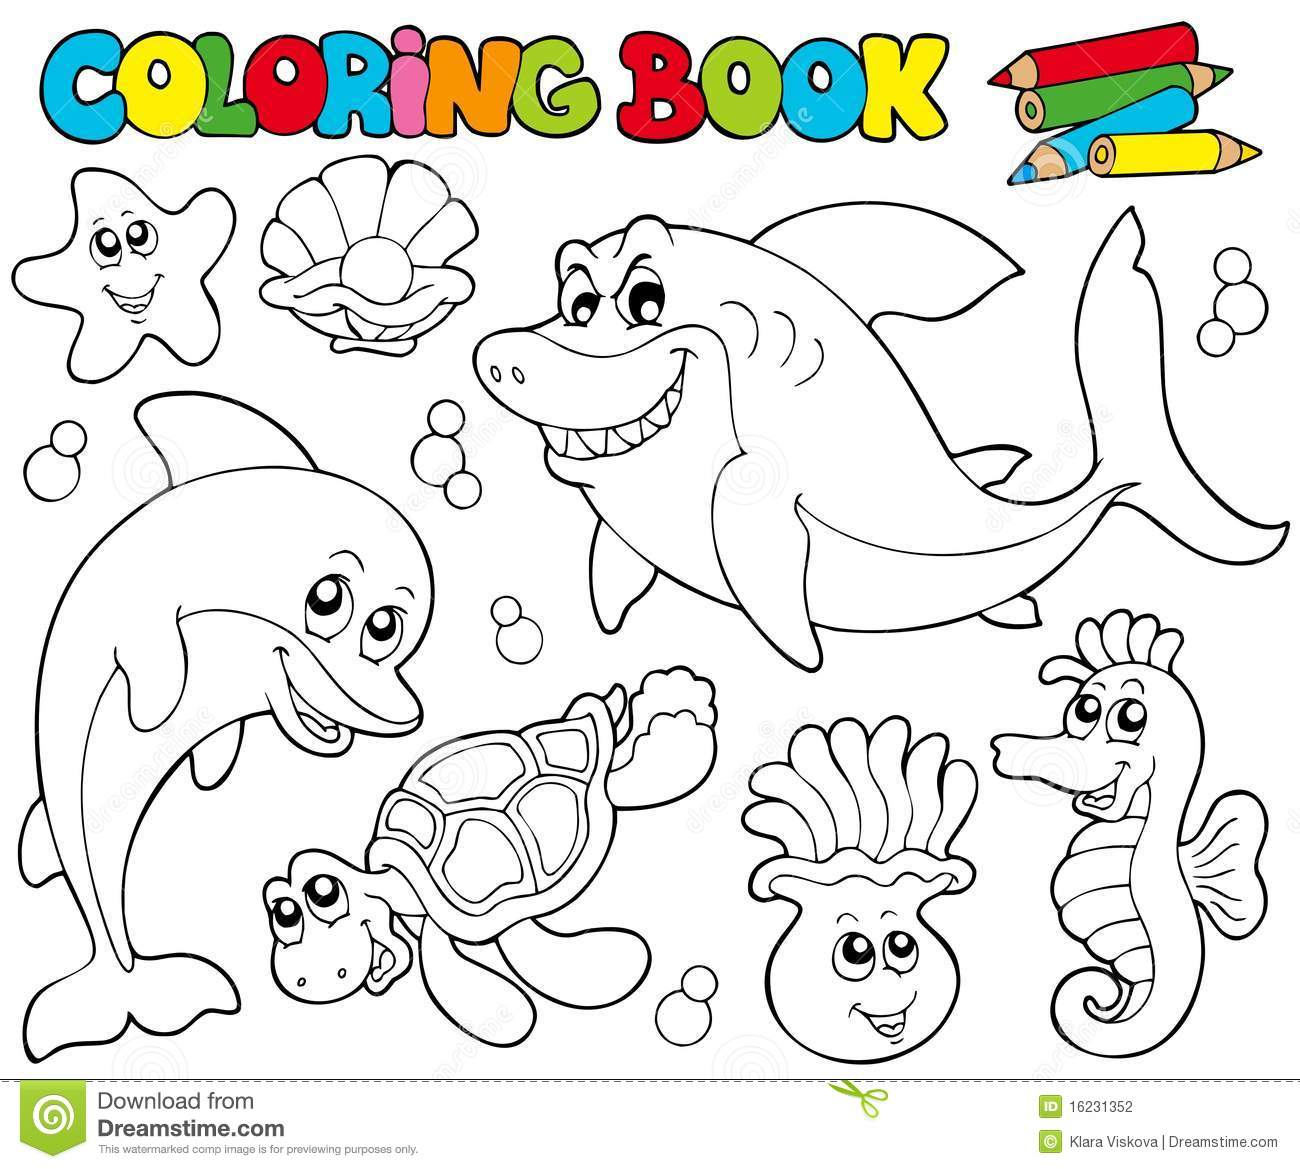 Coloring book with marine animals 2 stock vector Coloring book